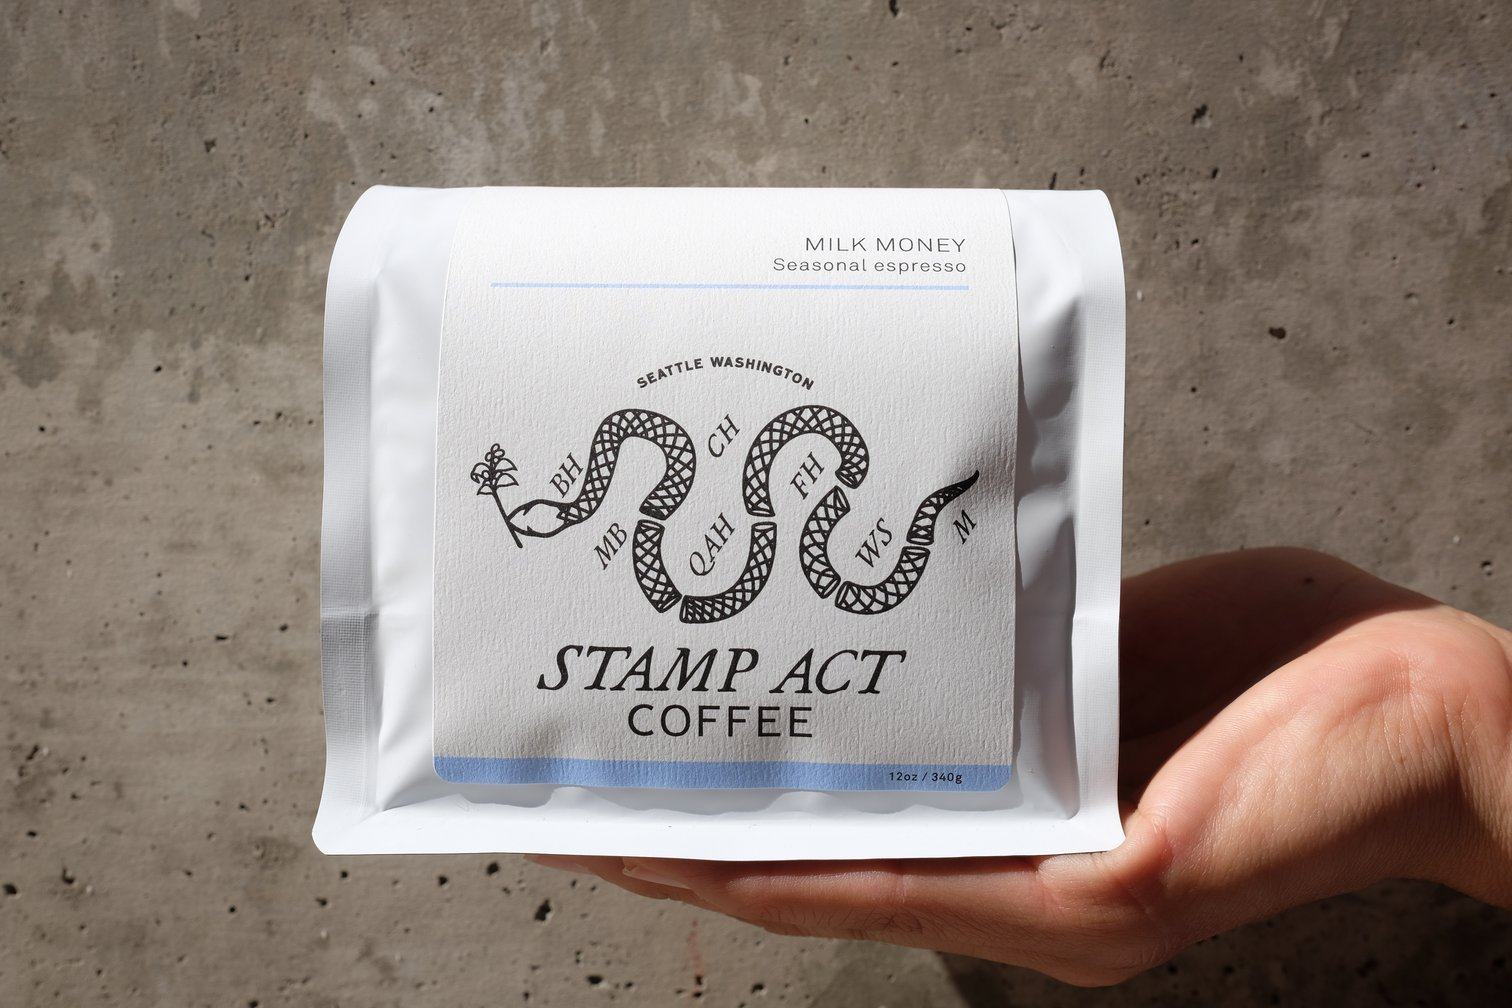 Featured Roaster - Stamp Act Coffee is our featured roaster. Come try out their terrific, locally roasted (like literally in the same building) blends.Tuesdays & Thursdays